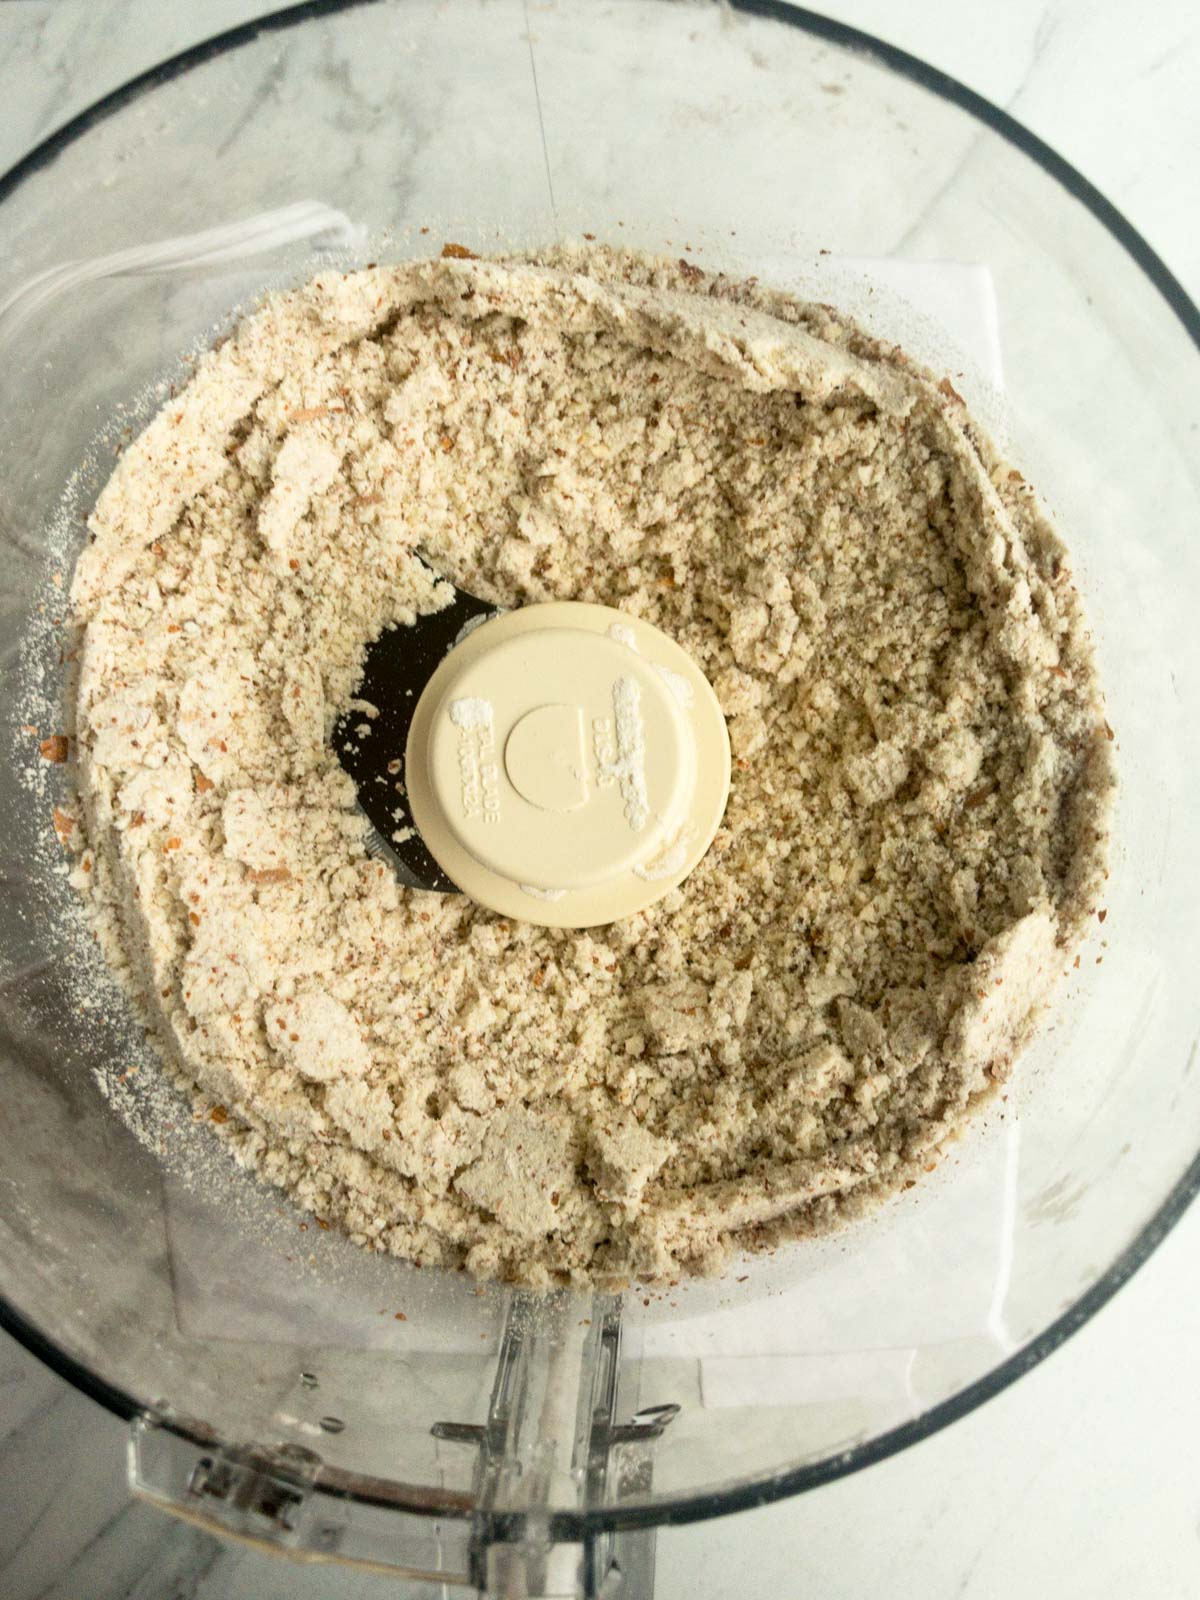 Finely groundnuts and flour in food processor bowl